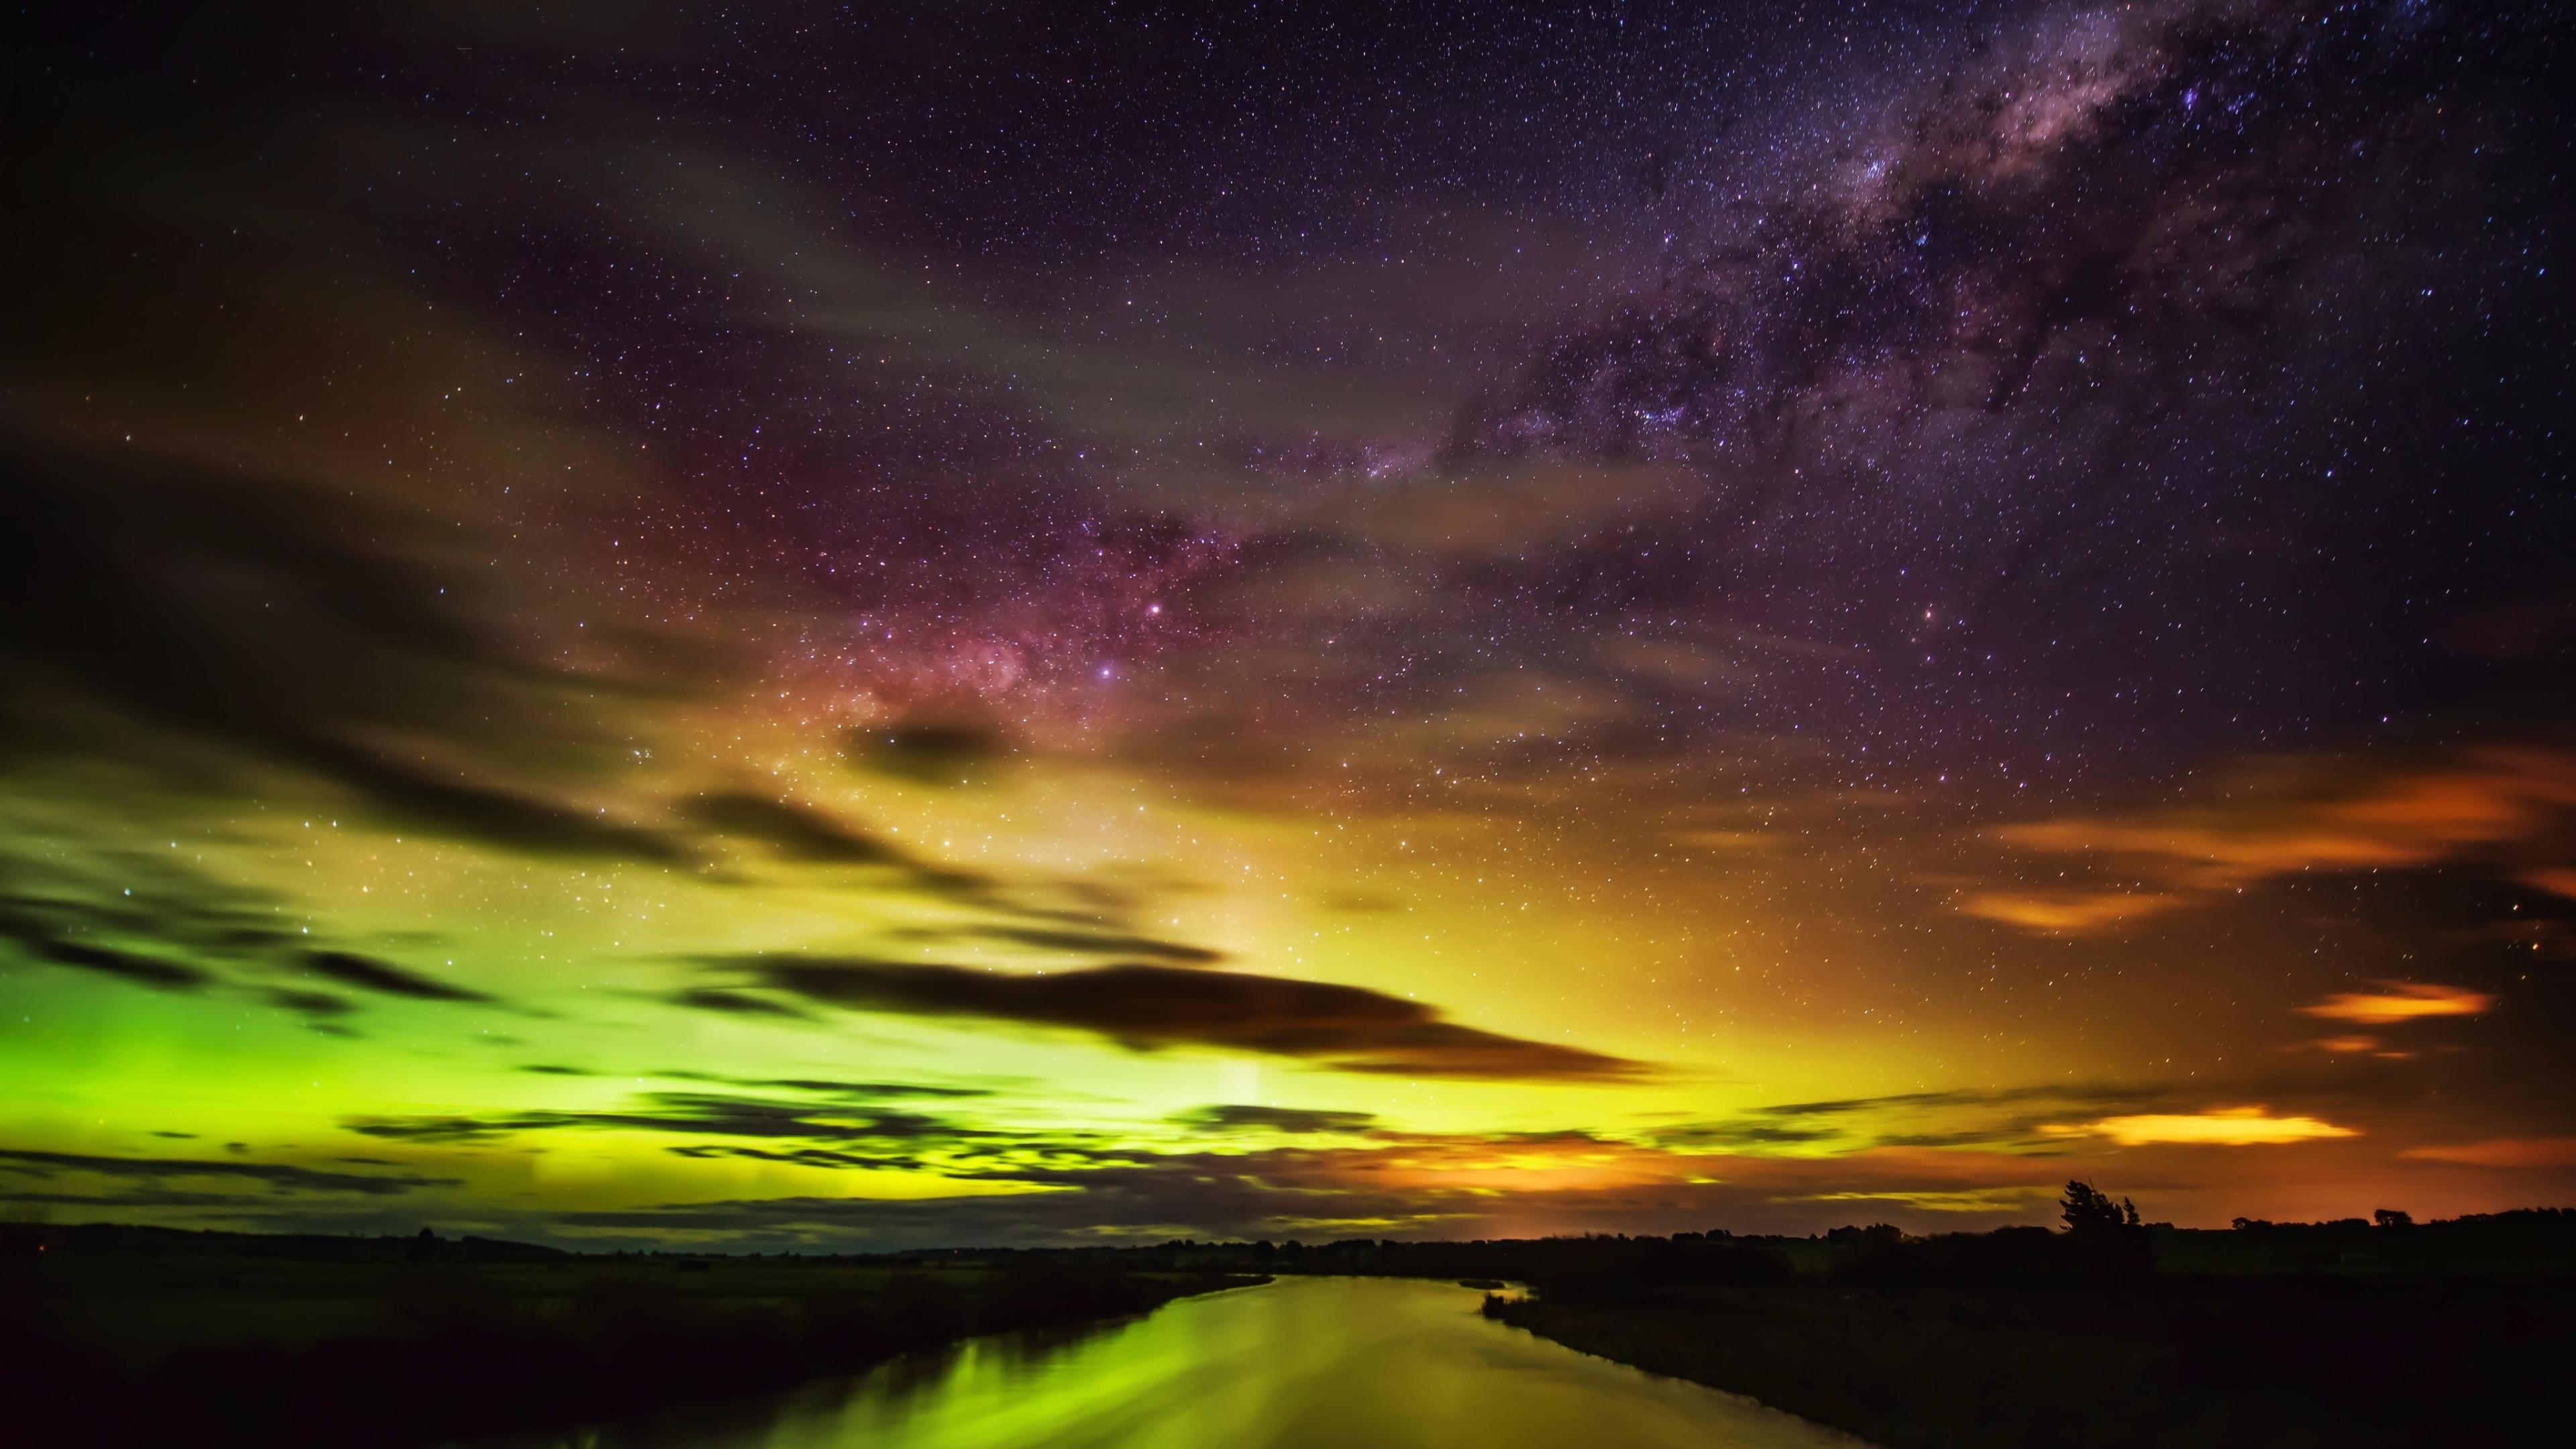 Res: 3840x2160, The Southern Lights In New Zealand Wallpaper | Wallpaper Studio 10 | Tens  of thousands HD and UltraHD wallpapers for Android, Windows and Xbox